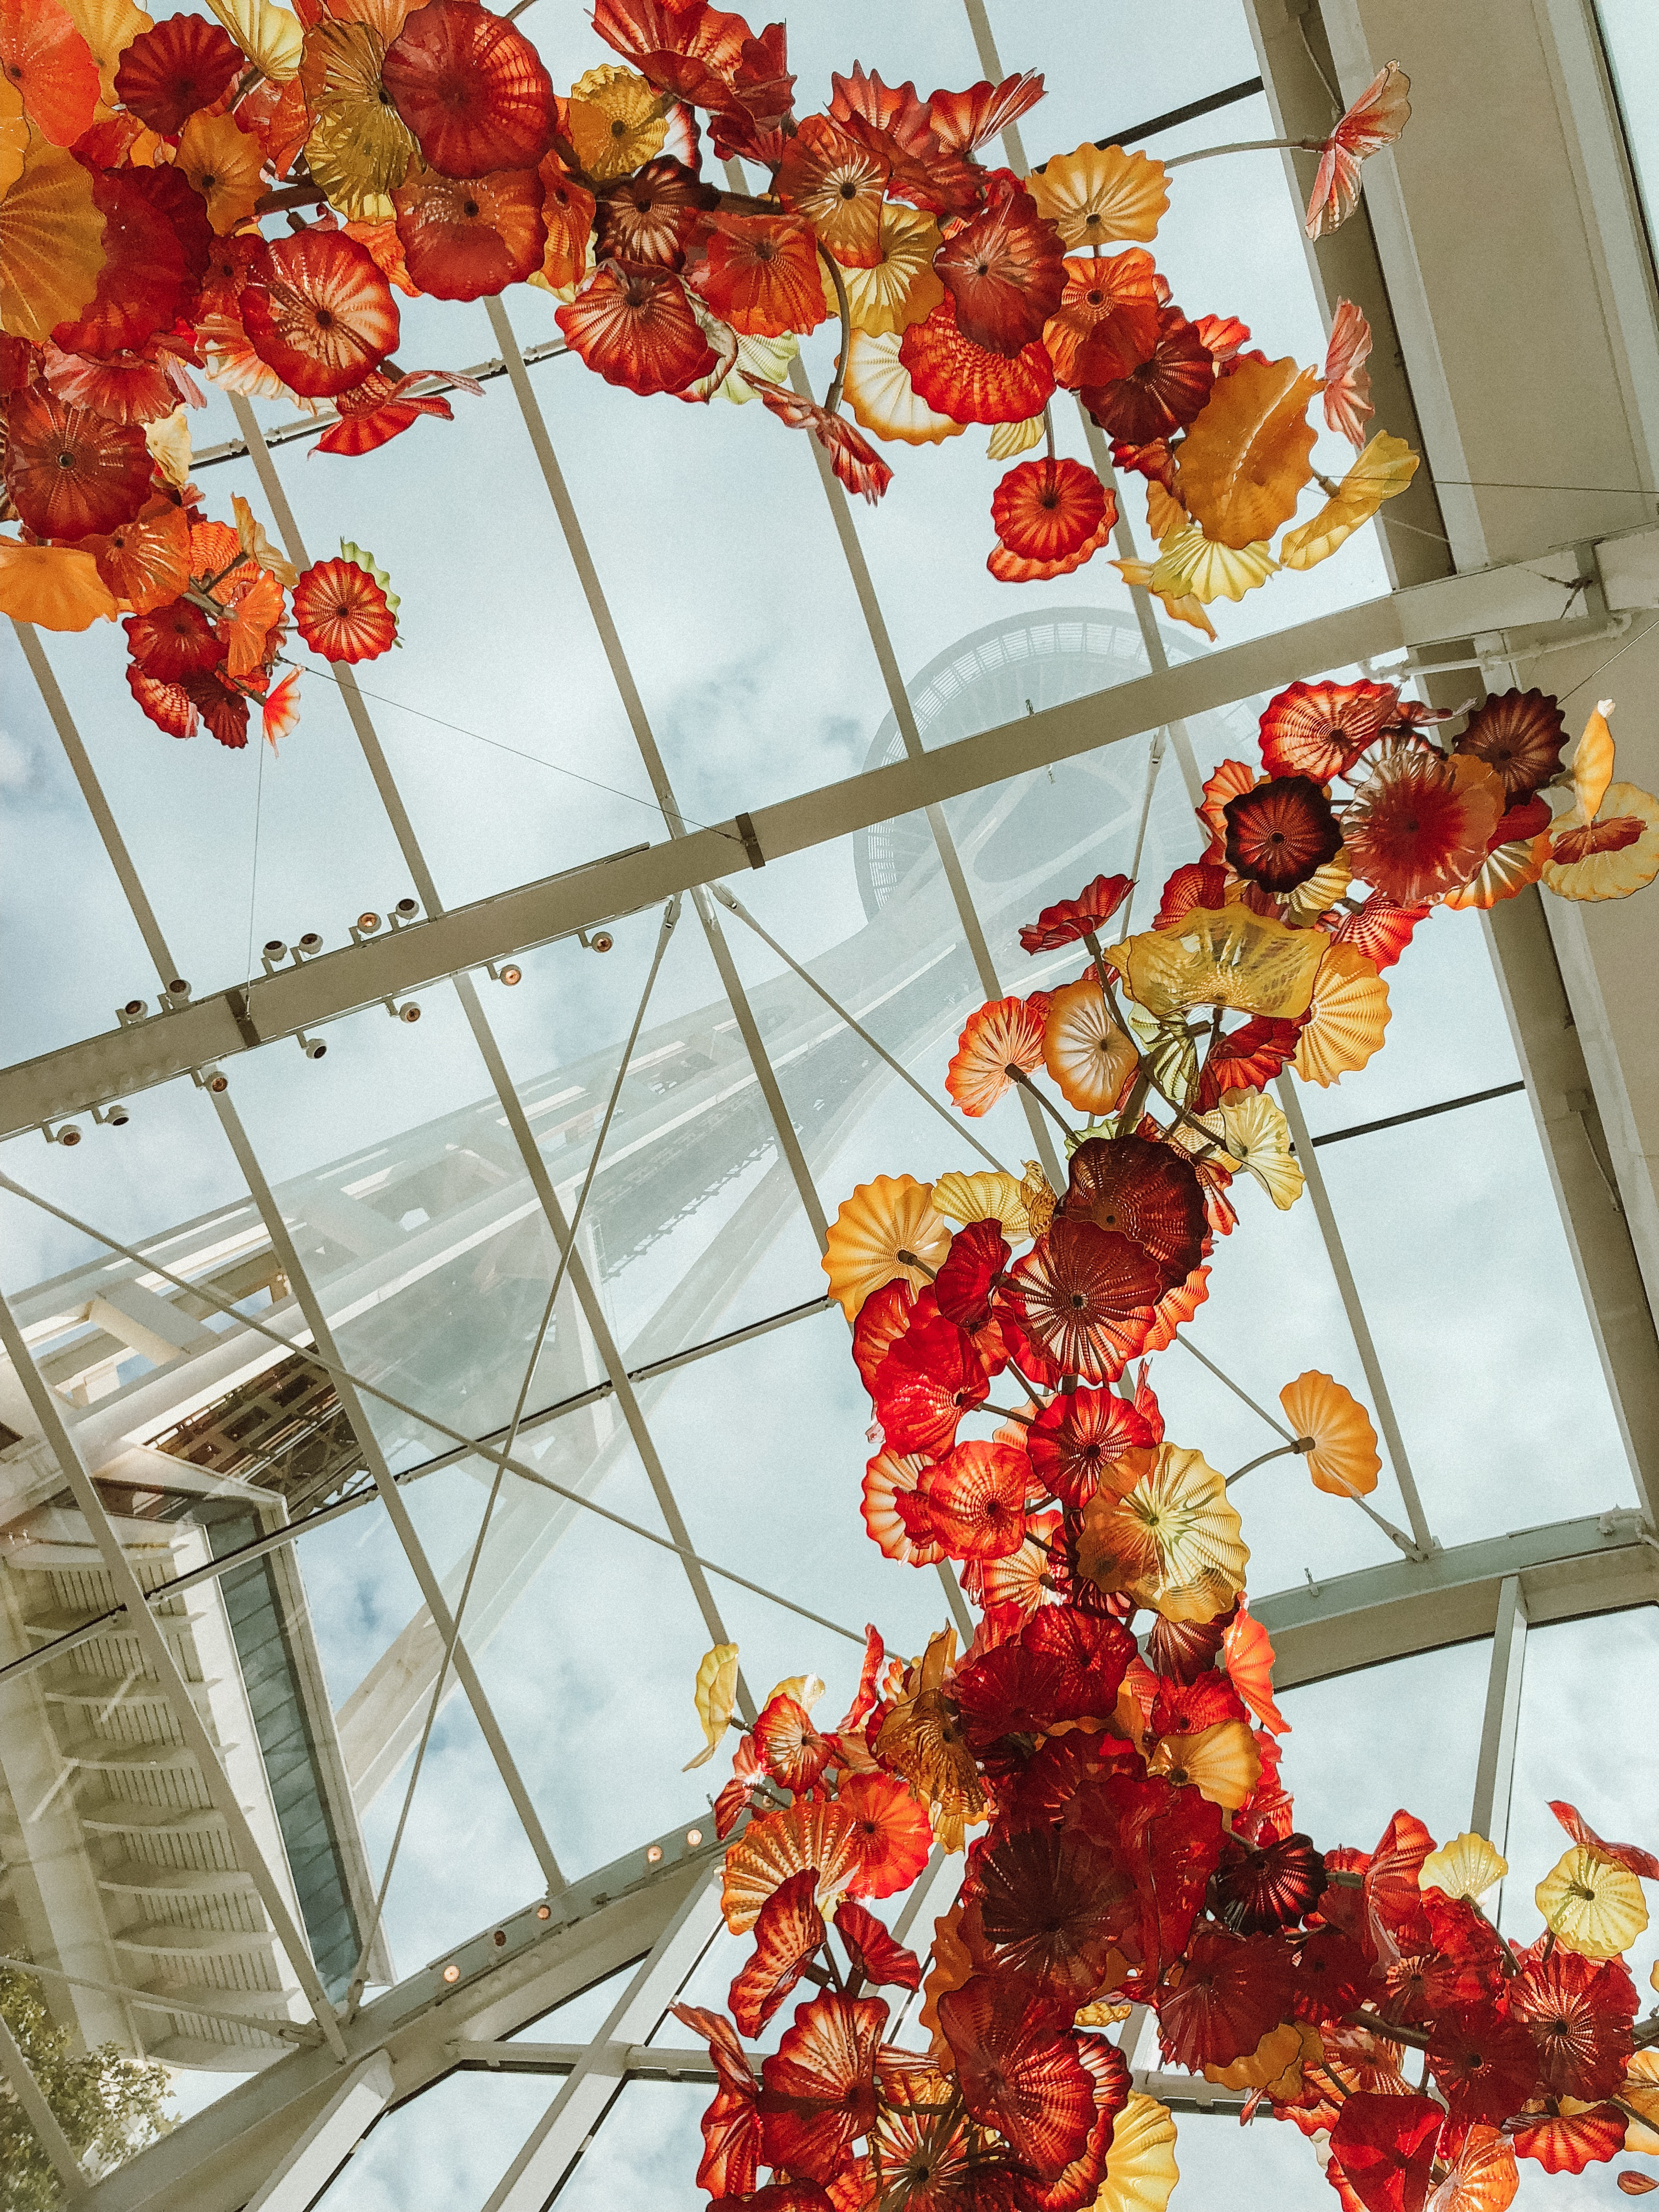 Chihuly Glass Garden in Seattle